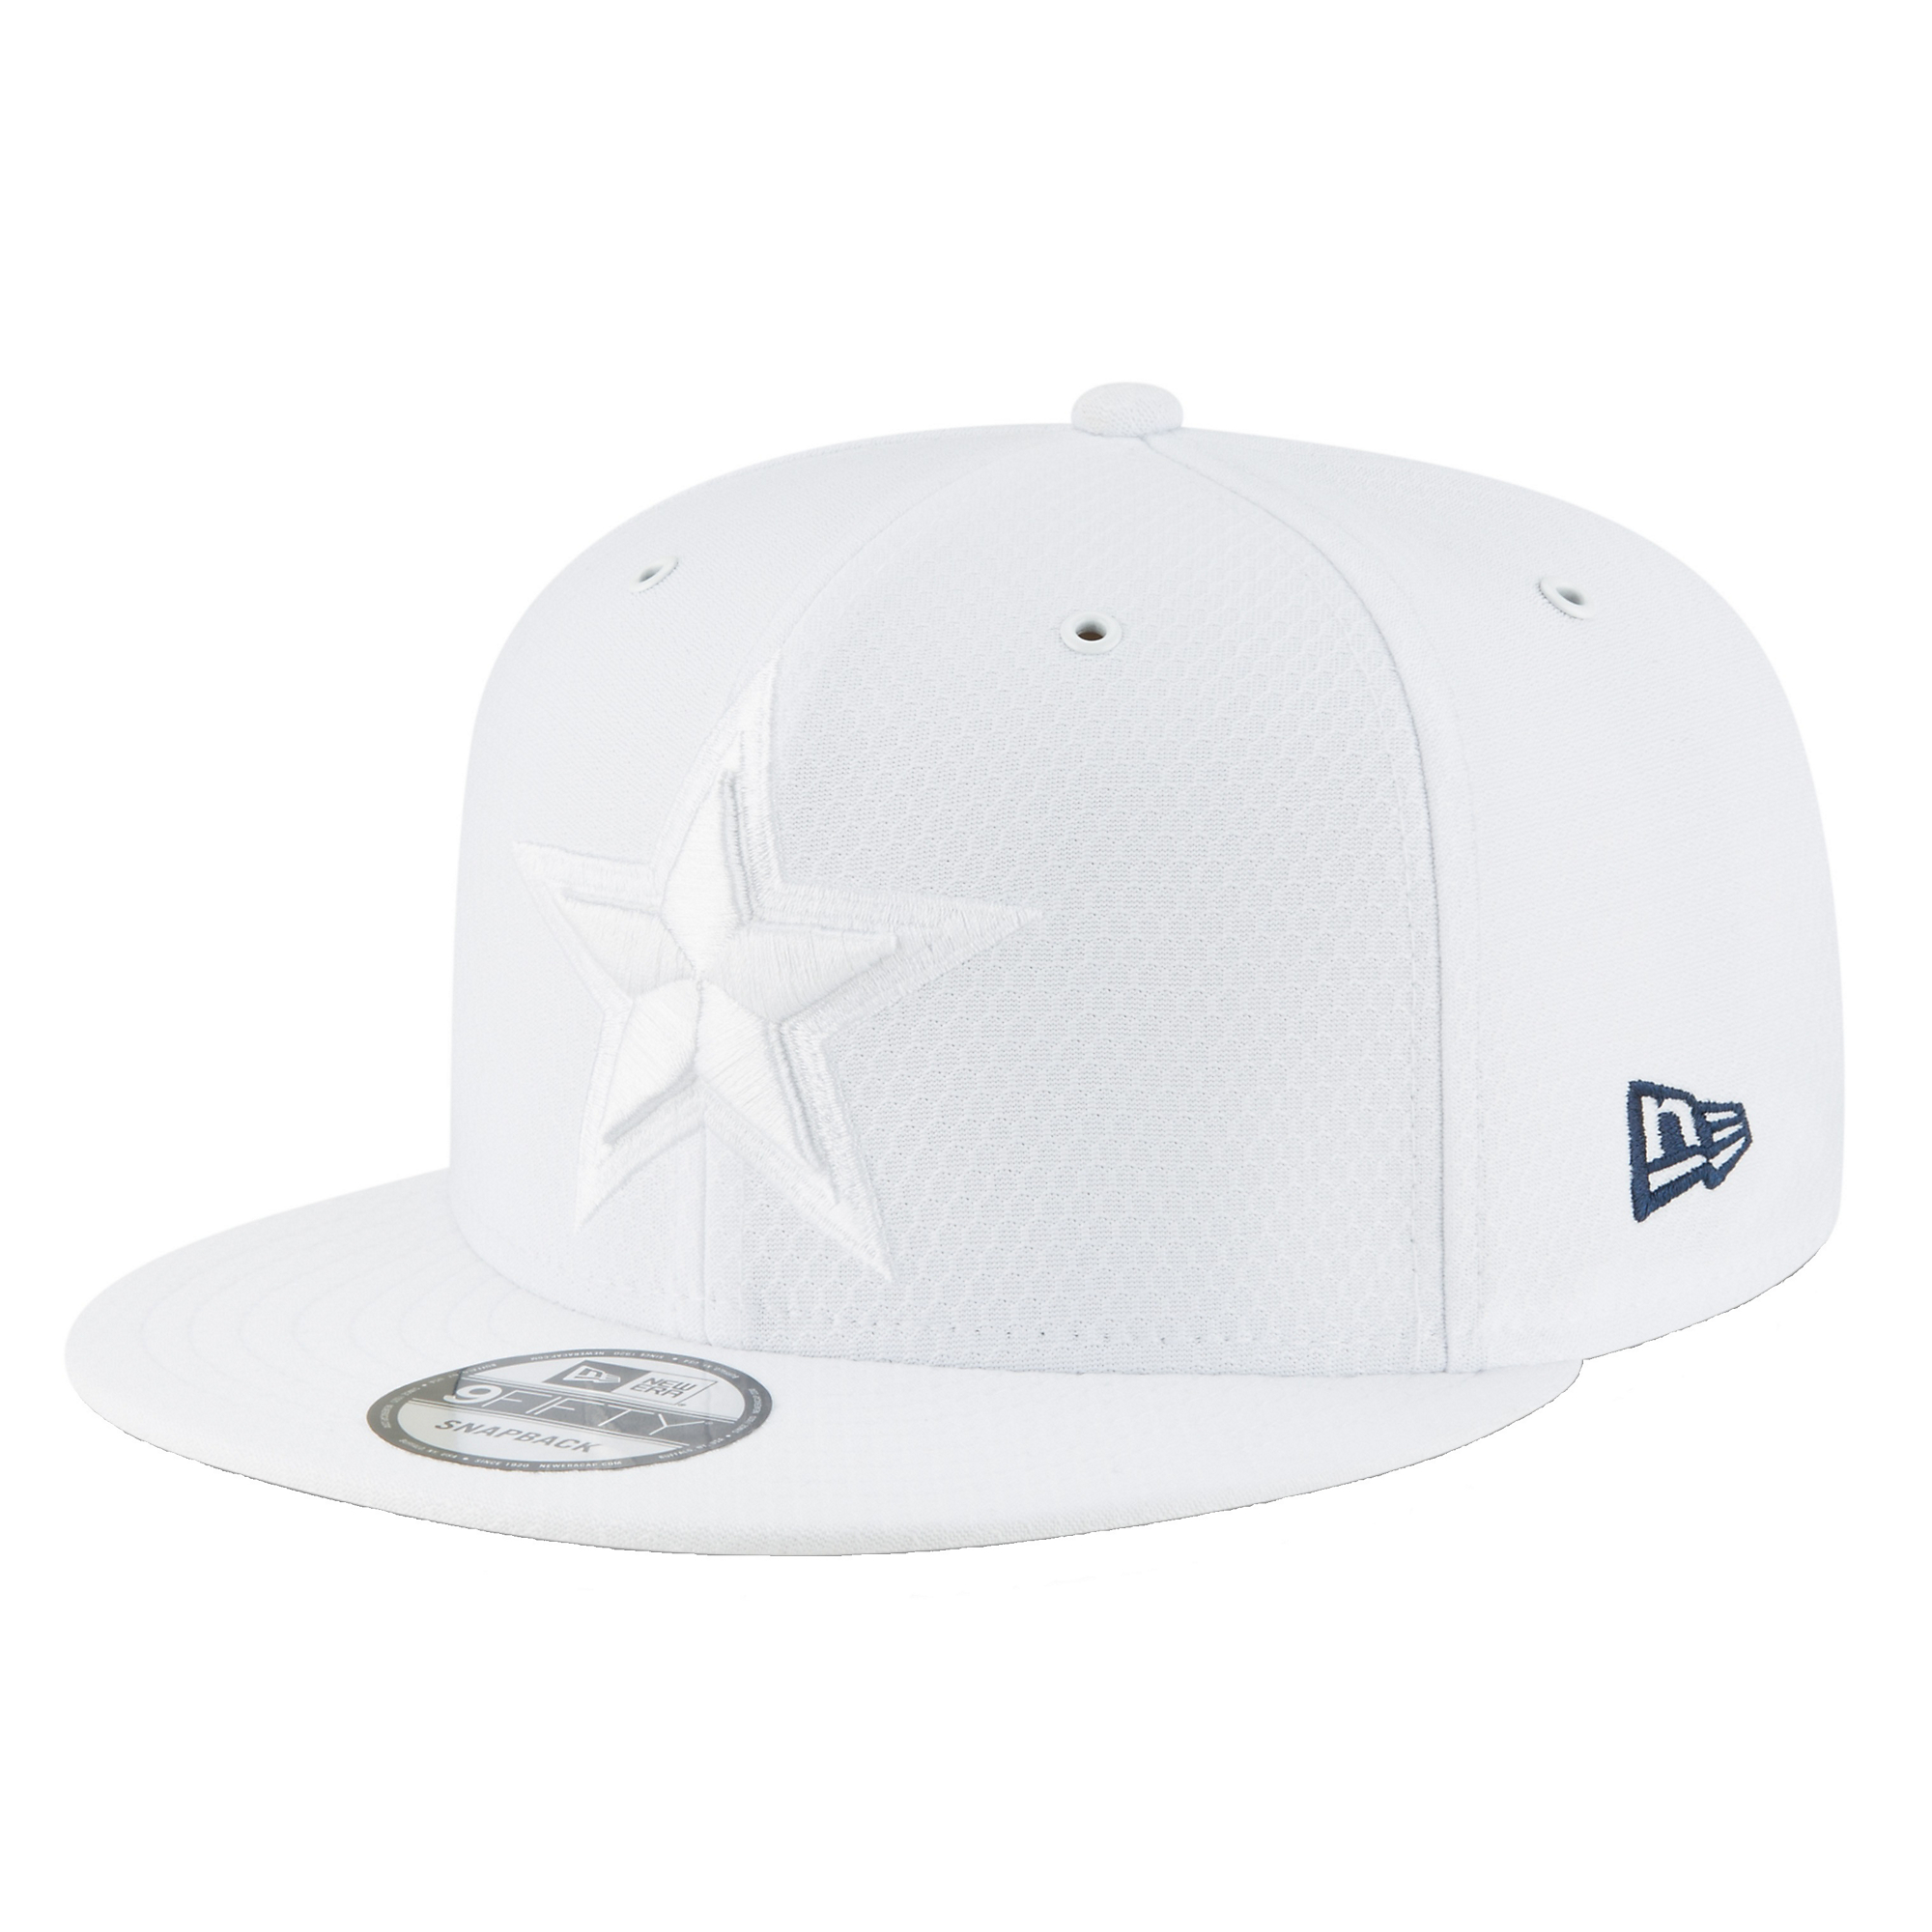 Dallas Cowboys New Era Youth Fashion Sideline Home Color Rush 9Fifty Hat